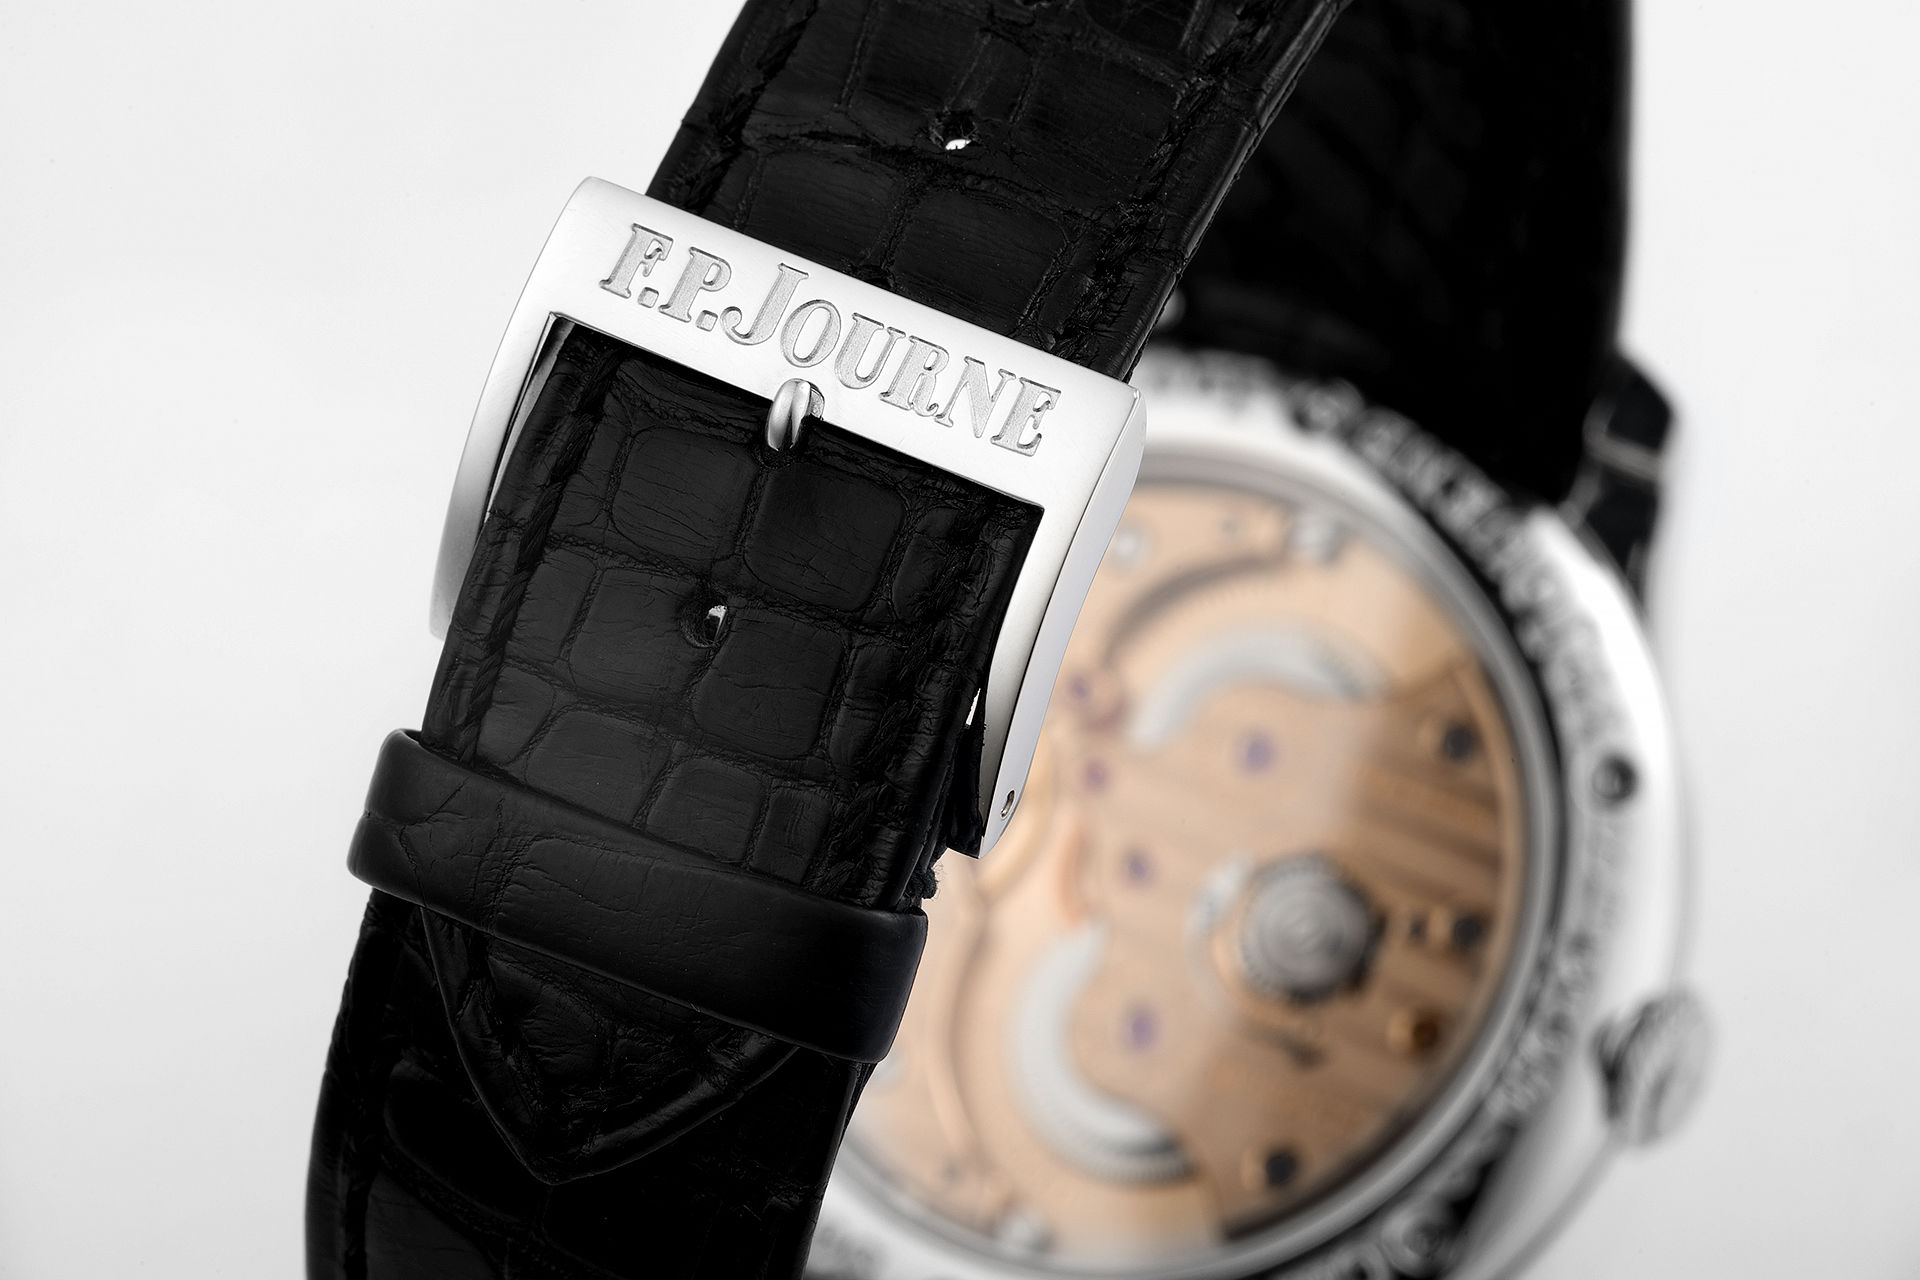 | Platinum 40.5mm Model  | F. P. Journe Chronometre Souverain